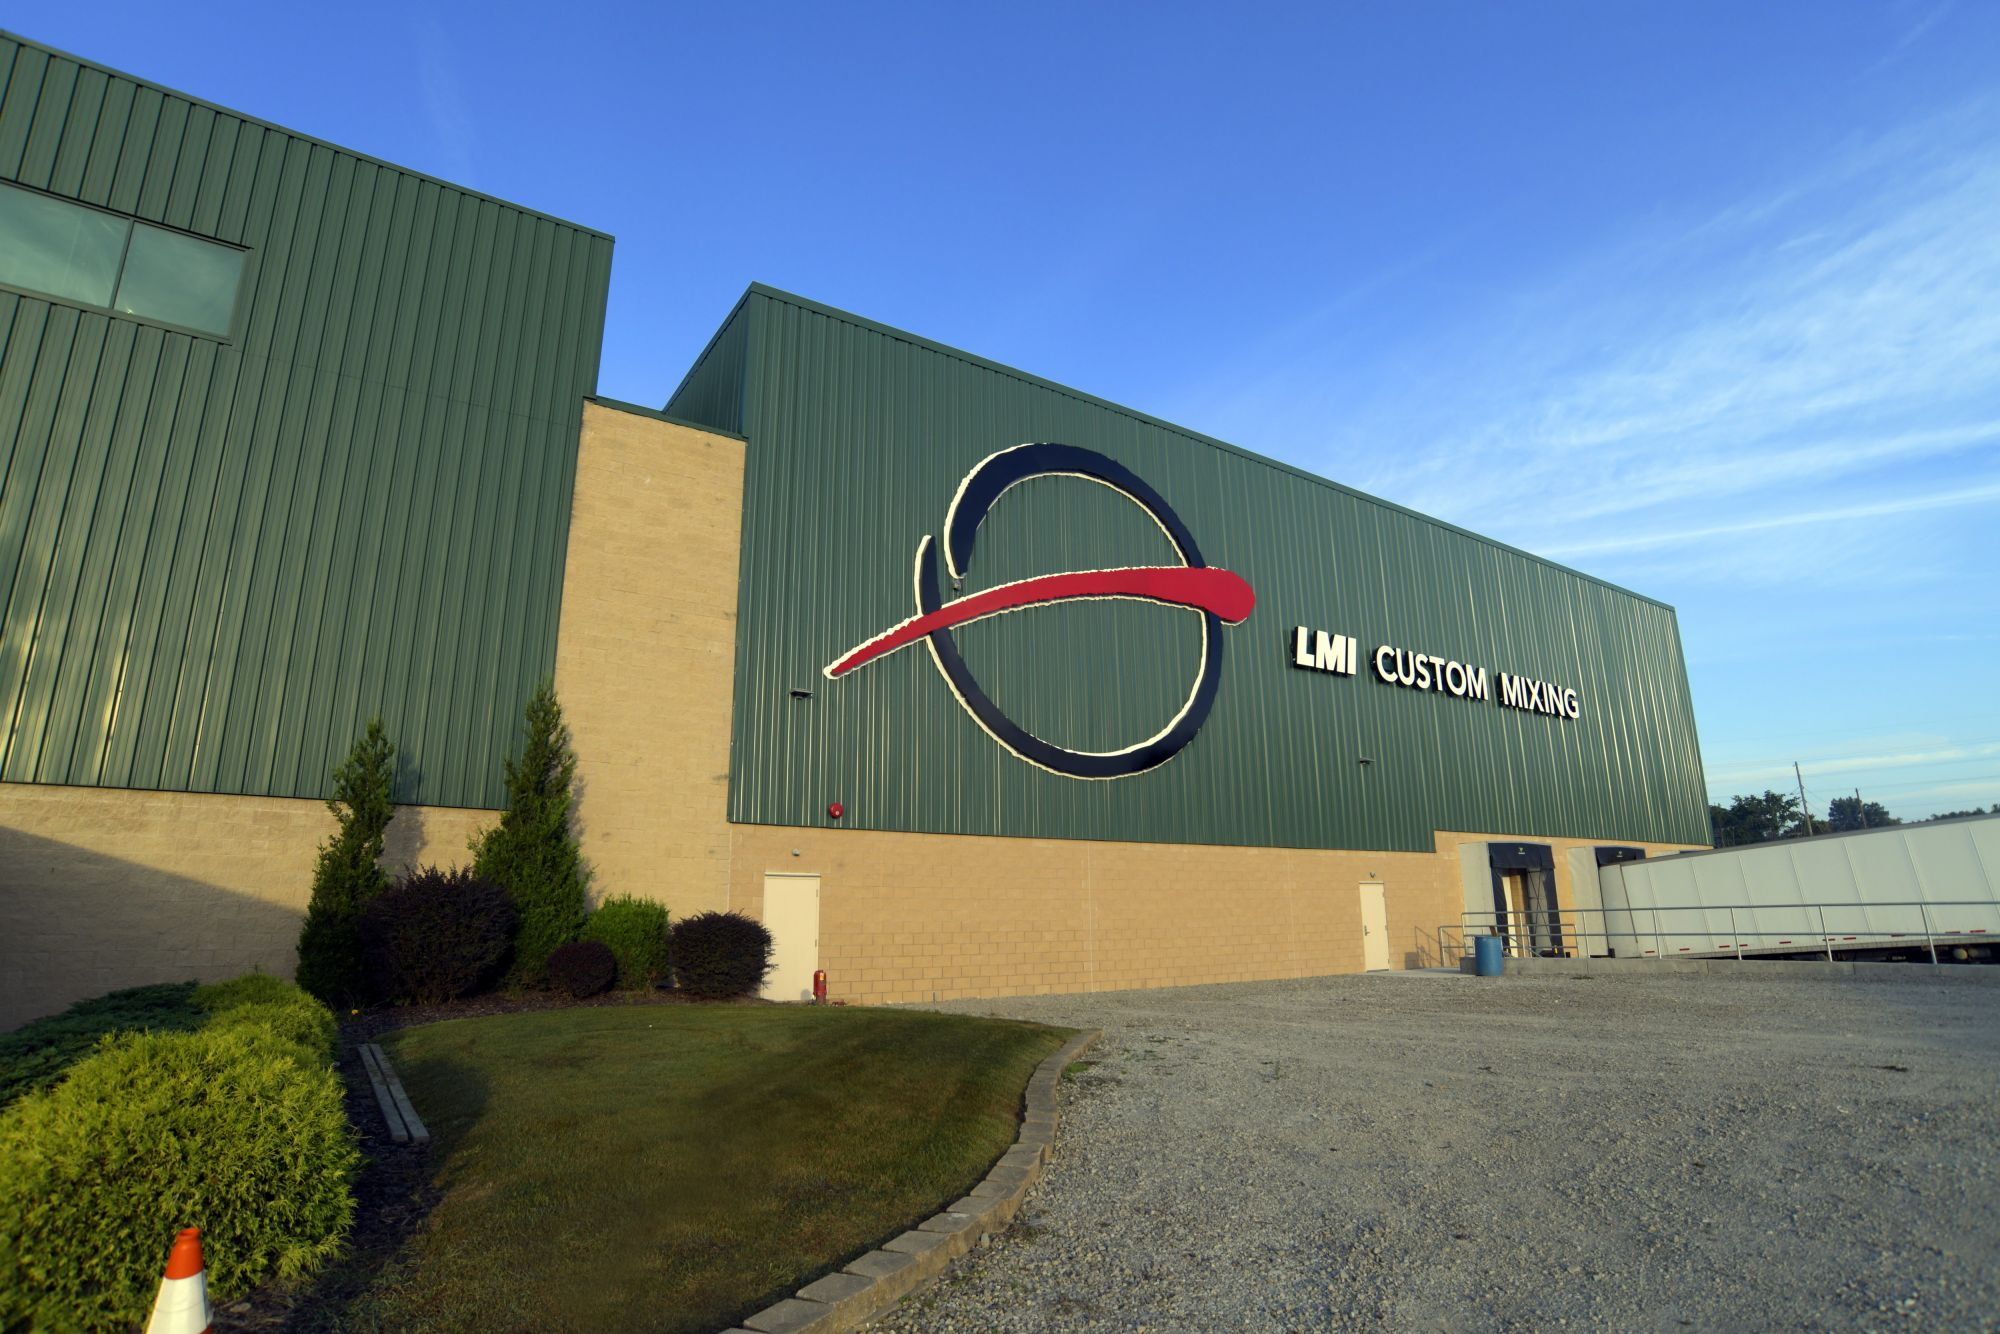 LMI Custom Mixing completes third phase of a $17M+ facility expansion in Southeastern Ohio